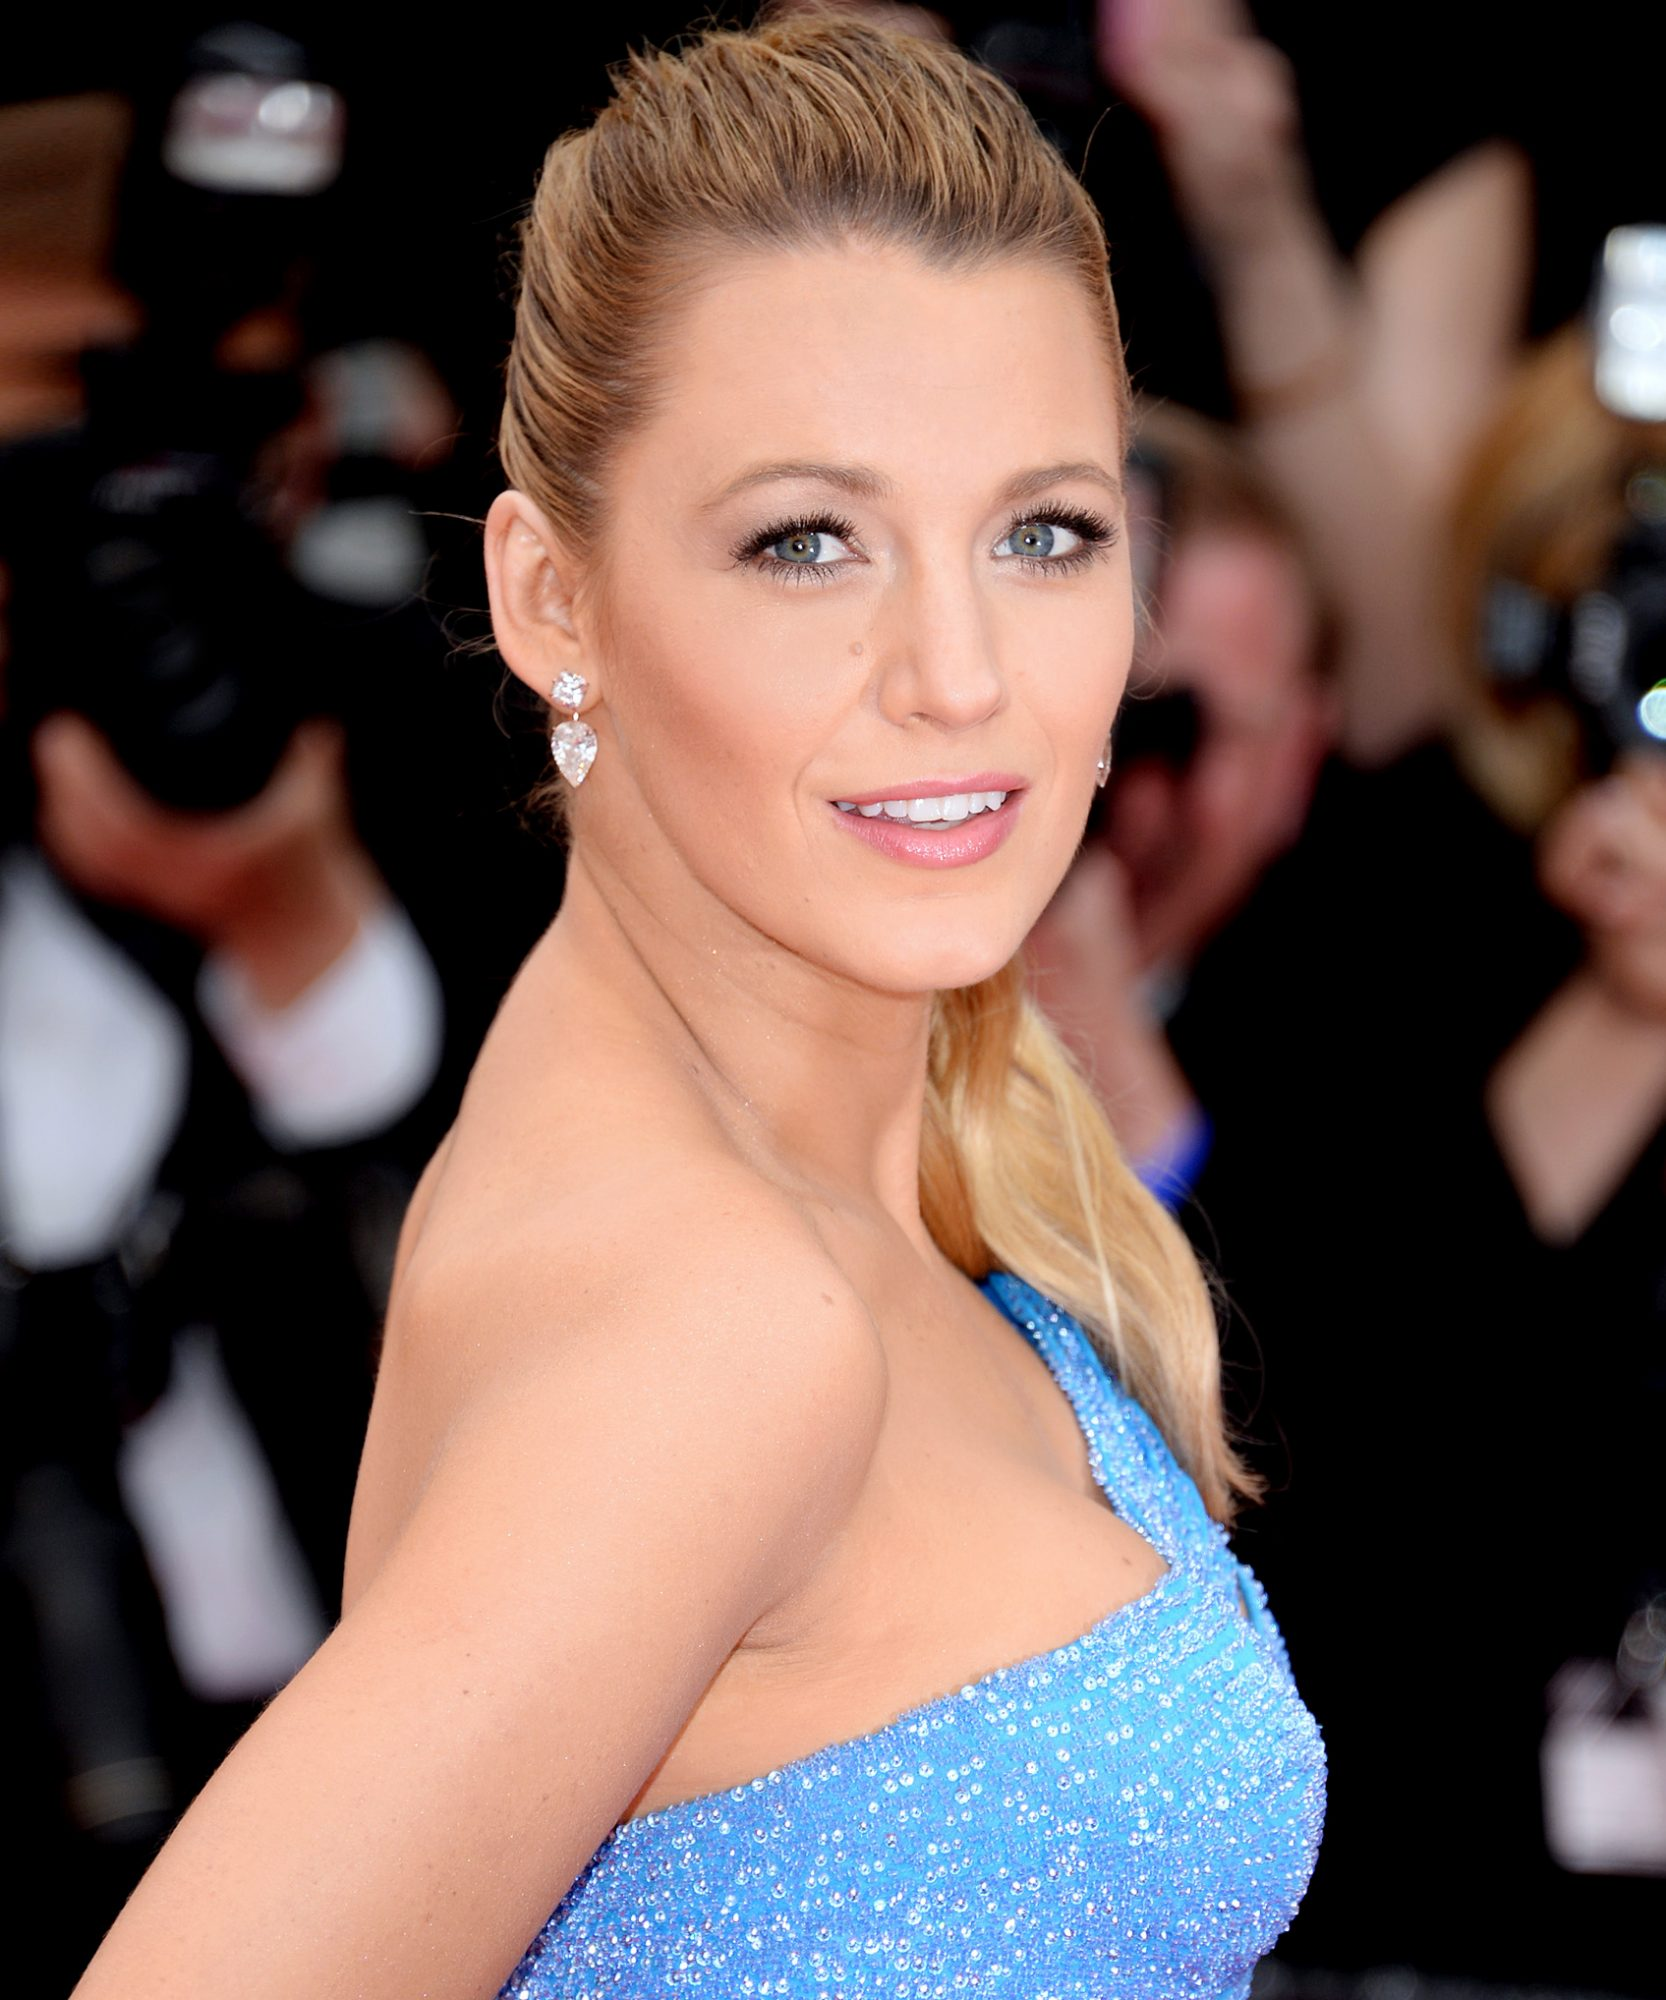 Blake Lively Hair Styles - Lead